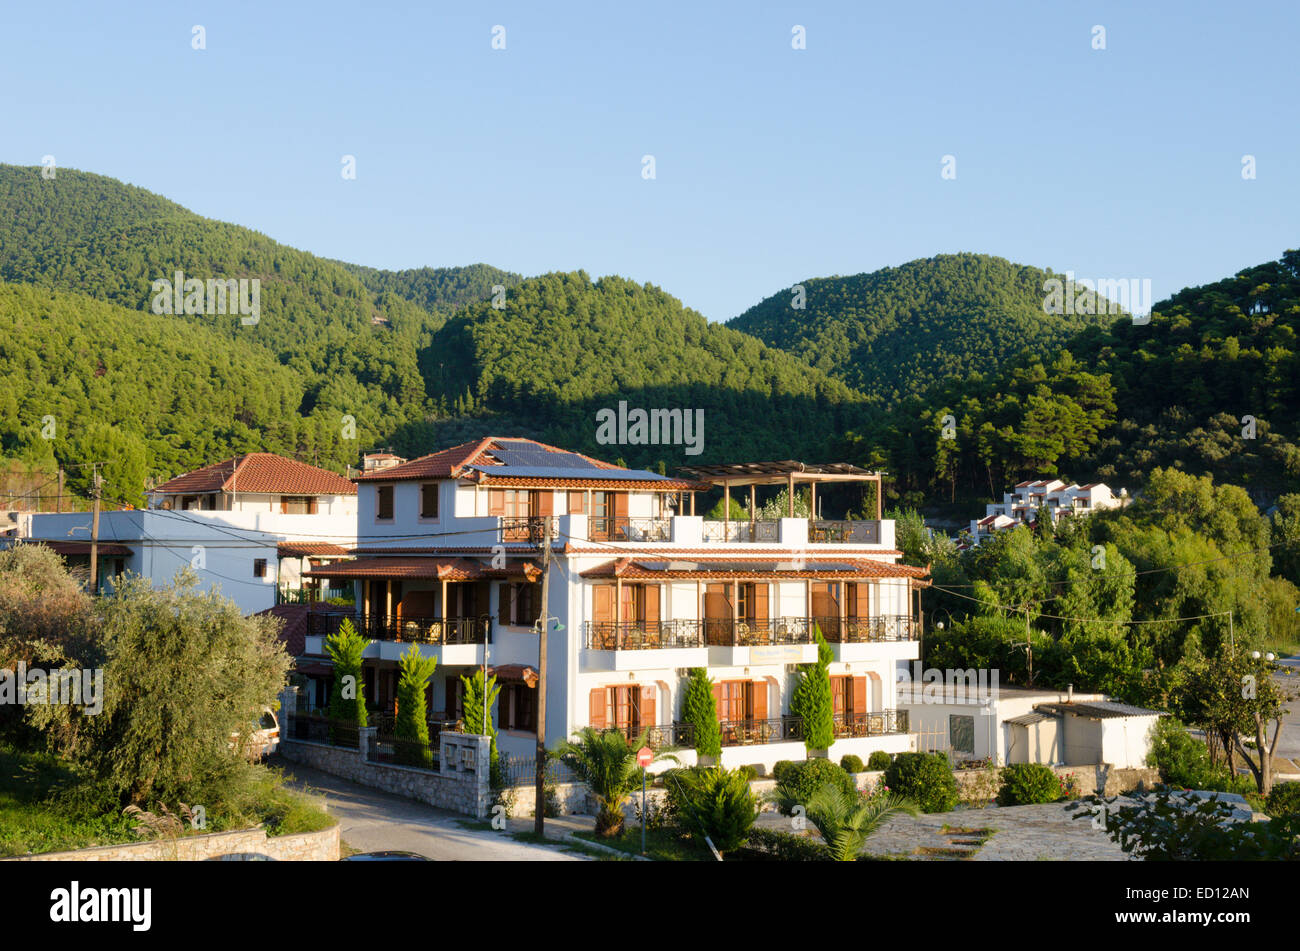 Accommodation blocks in the resort of Elios, Skopelos, Greece. October. Surrounded by Aleppo Pine [Pinus halepensis] - Stock Image